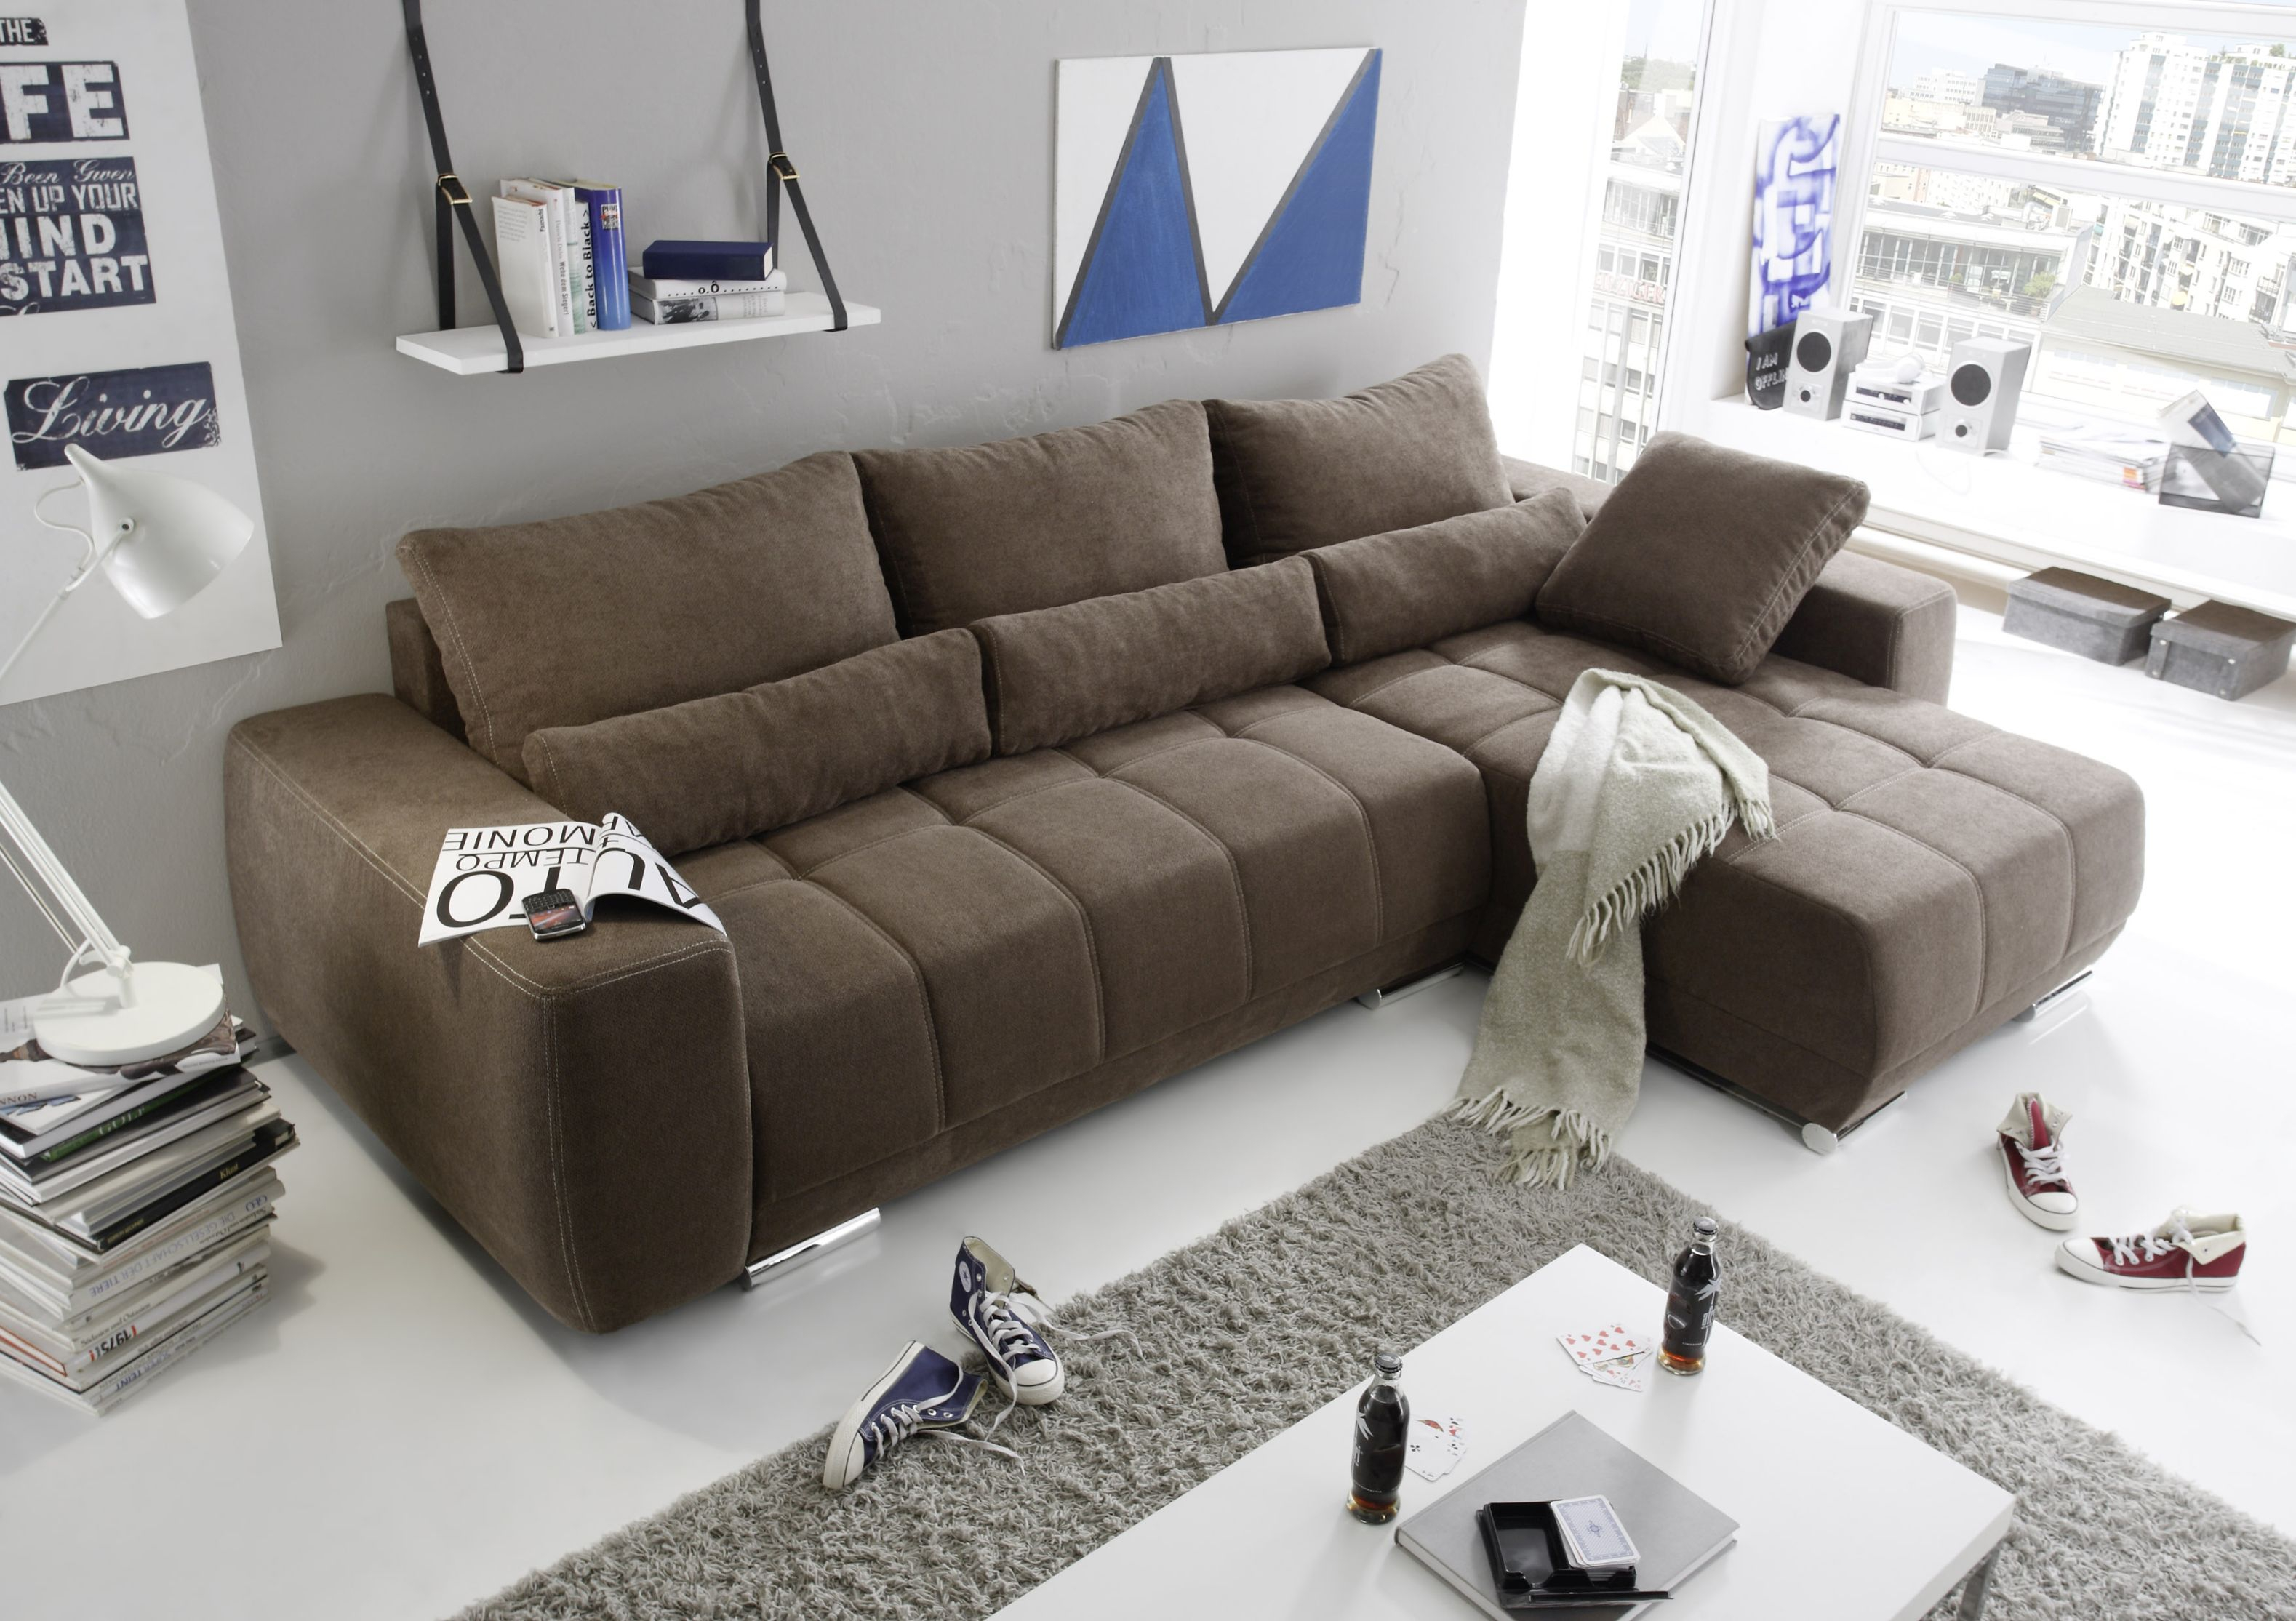 schlafcouch online bestellen cool schlafcouch with schlafcouch online bestellen top husliche. Black Bedroom Furniture Sets. Home Design Ideas